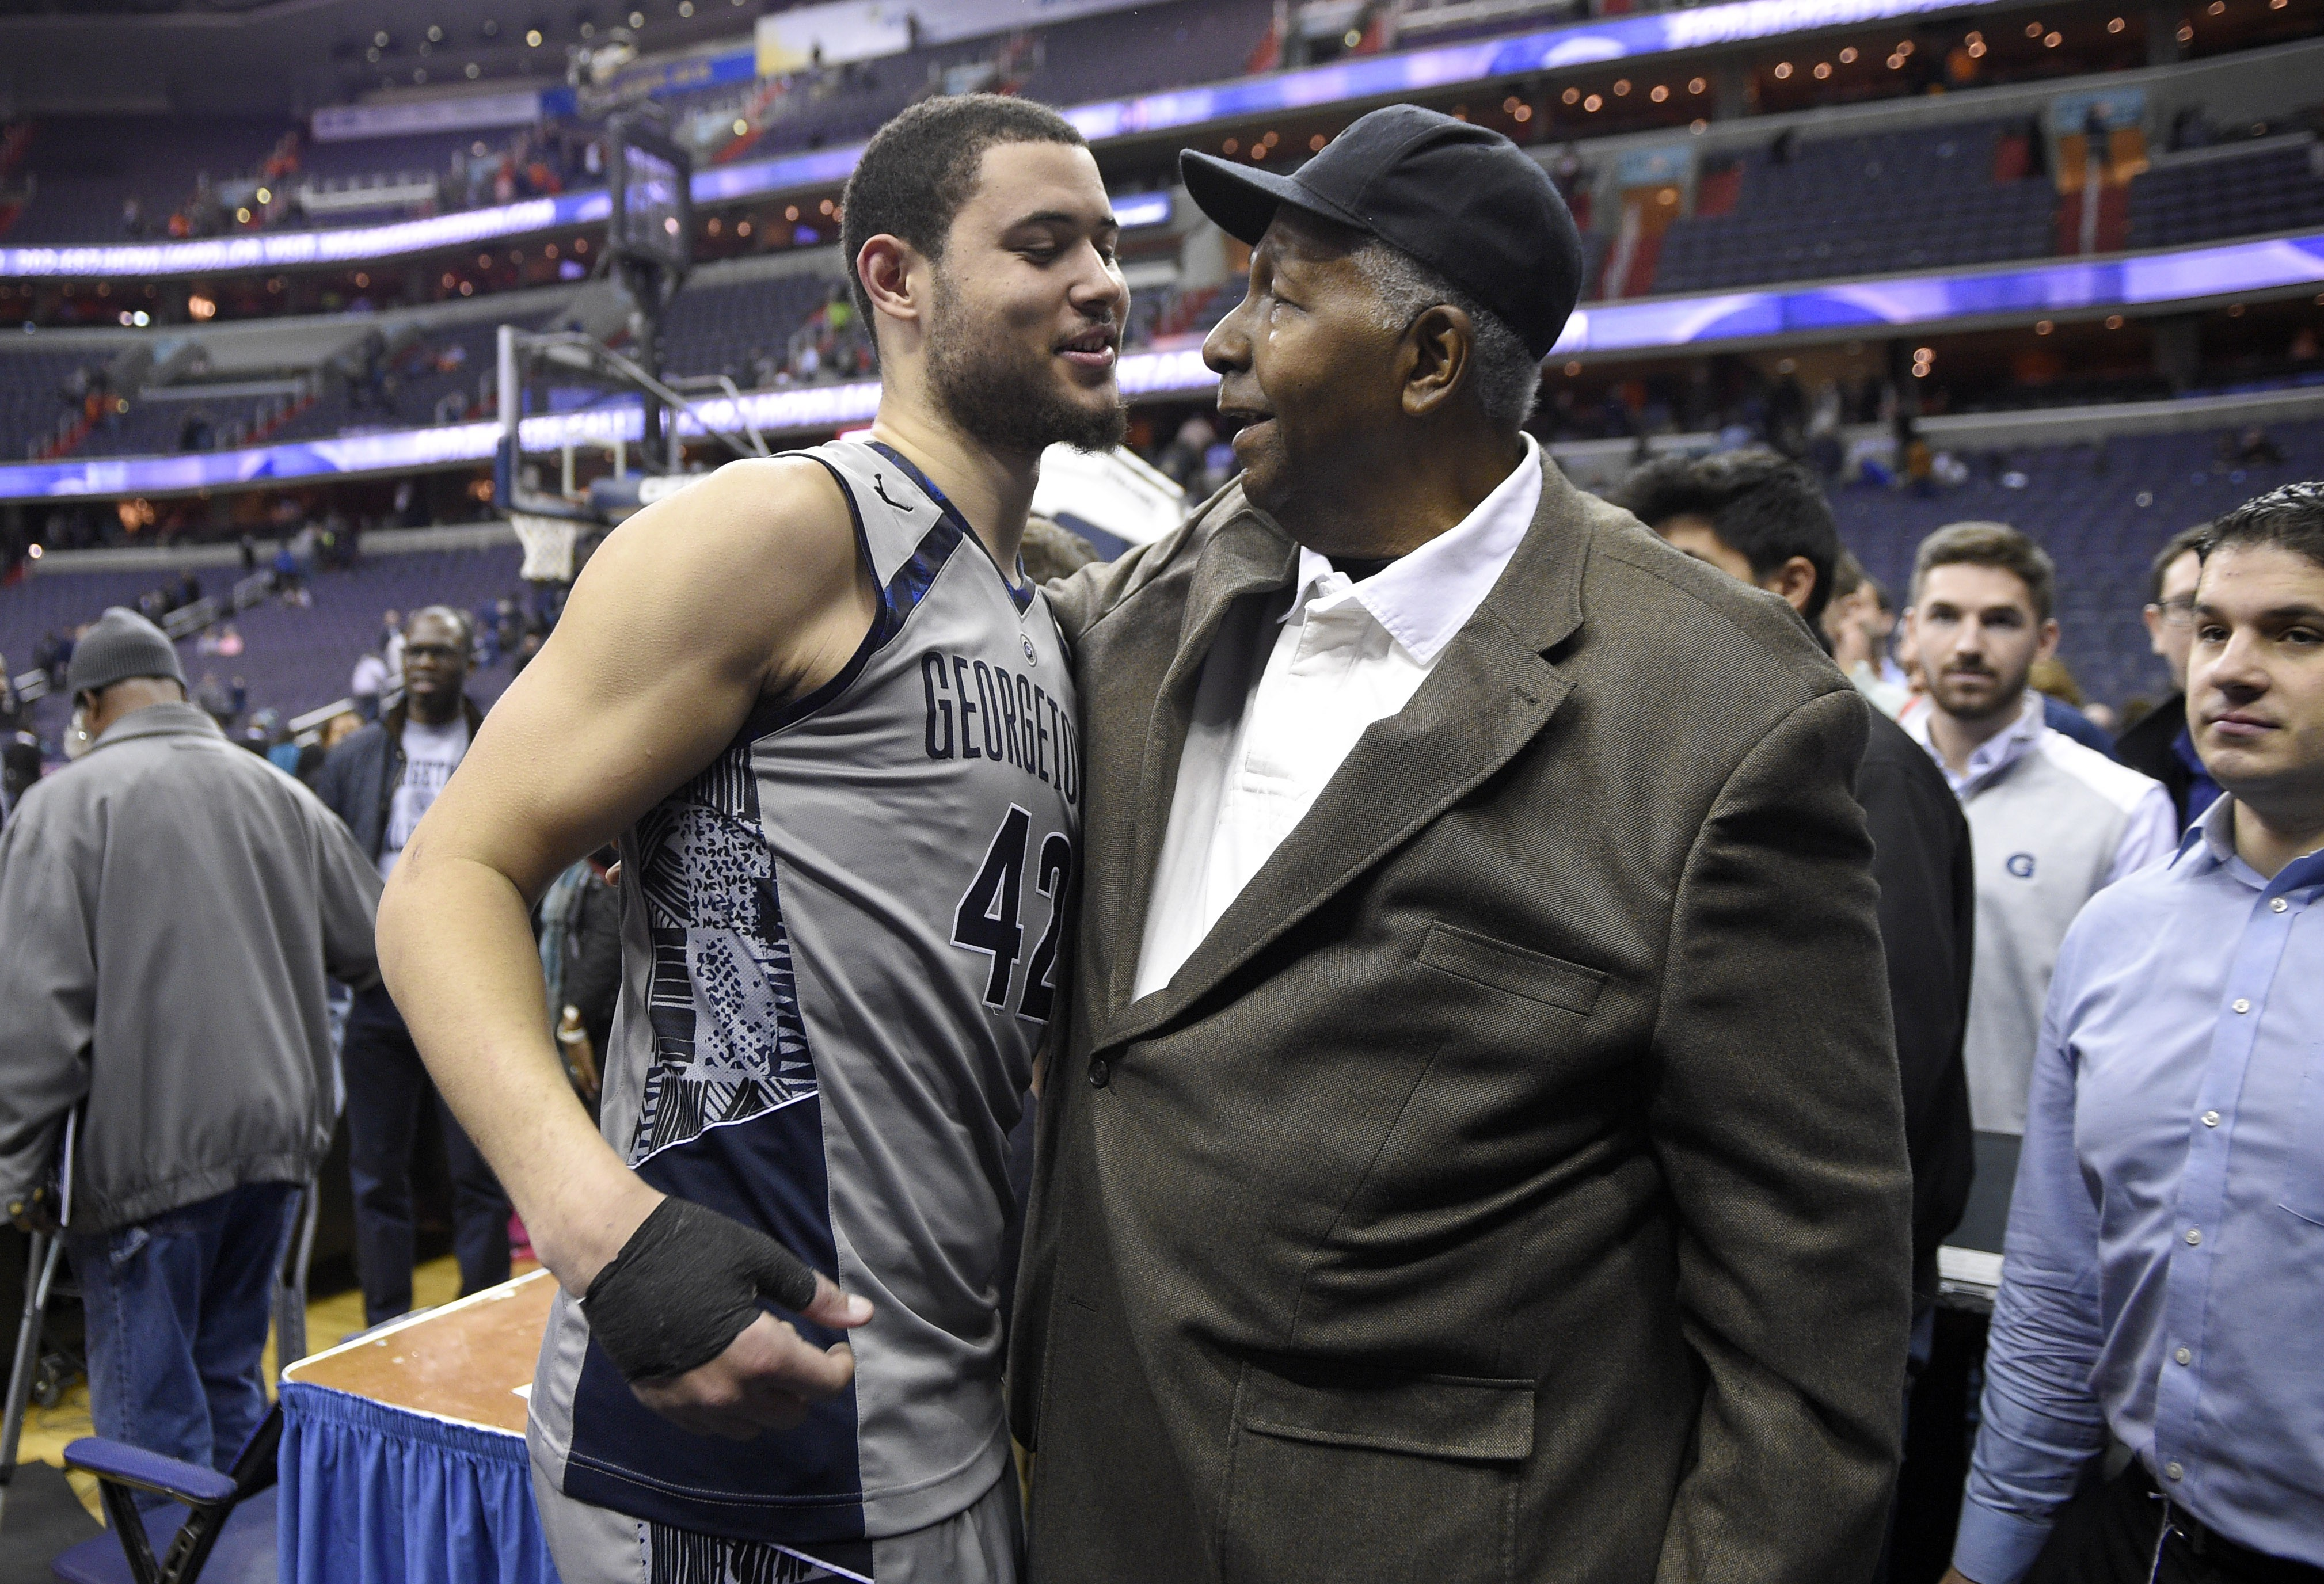 Georgetown center Bradley Hayes (42) is greeted by John Thompson Jr., right, father of Georgetown head coach John Thompson III, after an NCAA college basketball game against Syracuse, Saturday, Dec. 5, 2015, in Washington. Georgetown won 79-72. (AP Photo/Nick Wass)